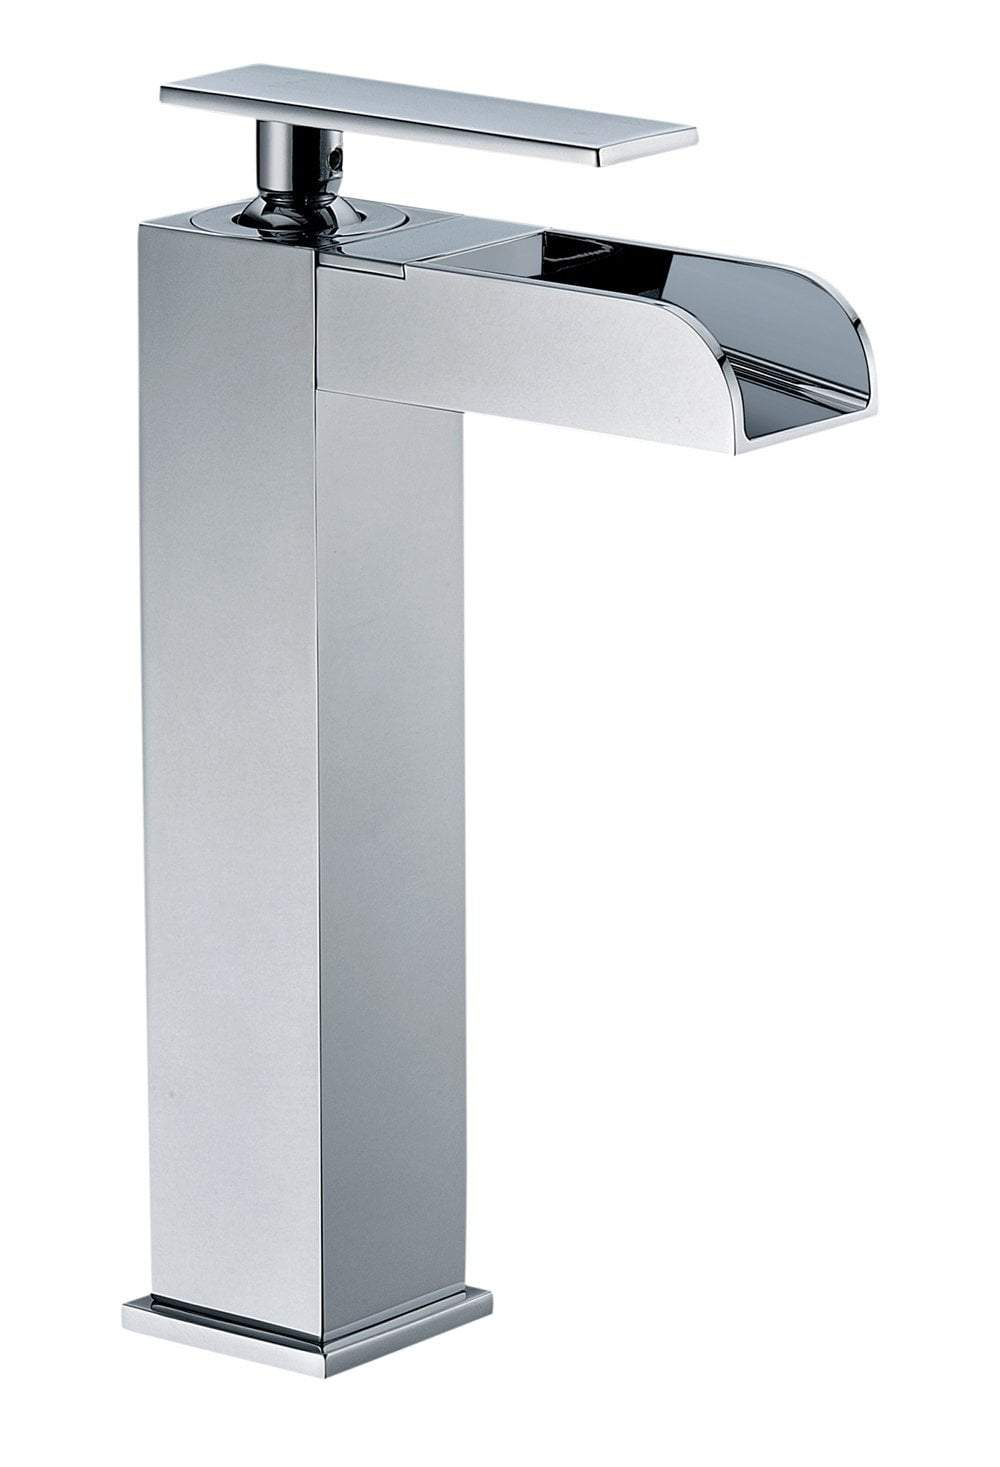 Image of: Polished Chrome Single Hole Tall Waterfall Bathroom Faucet Luxury Bath Collection